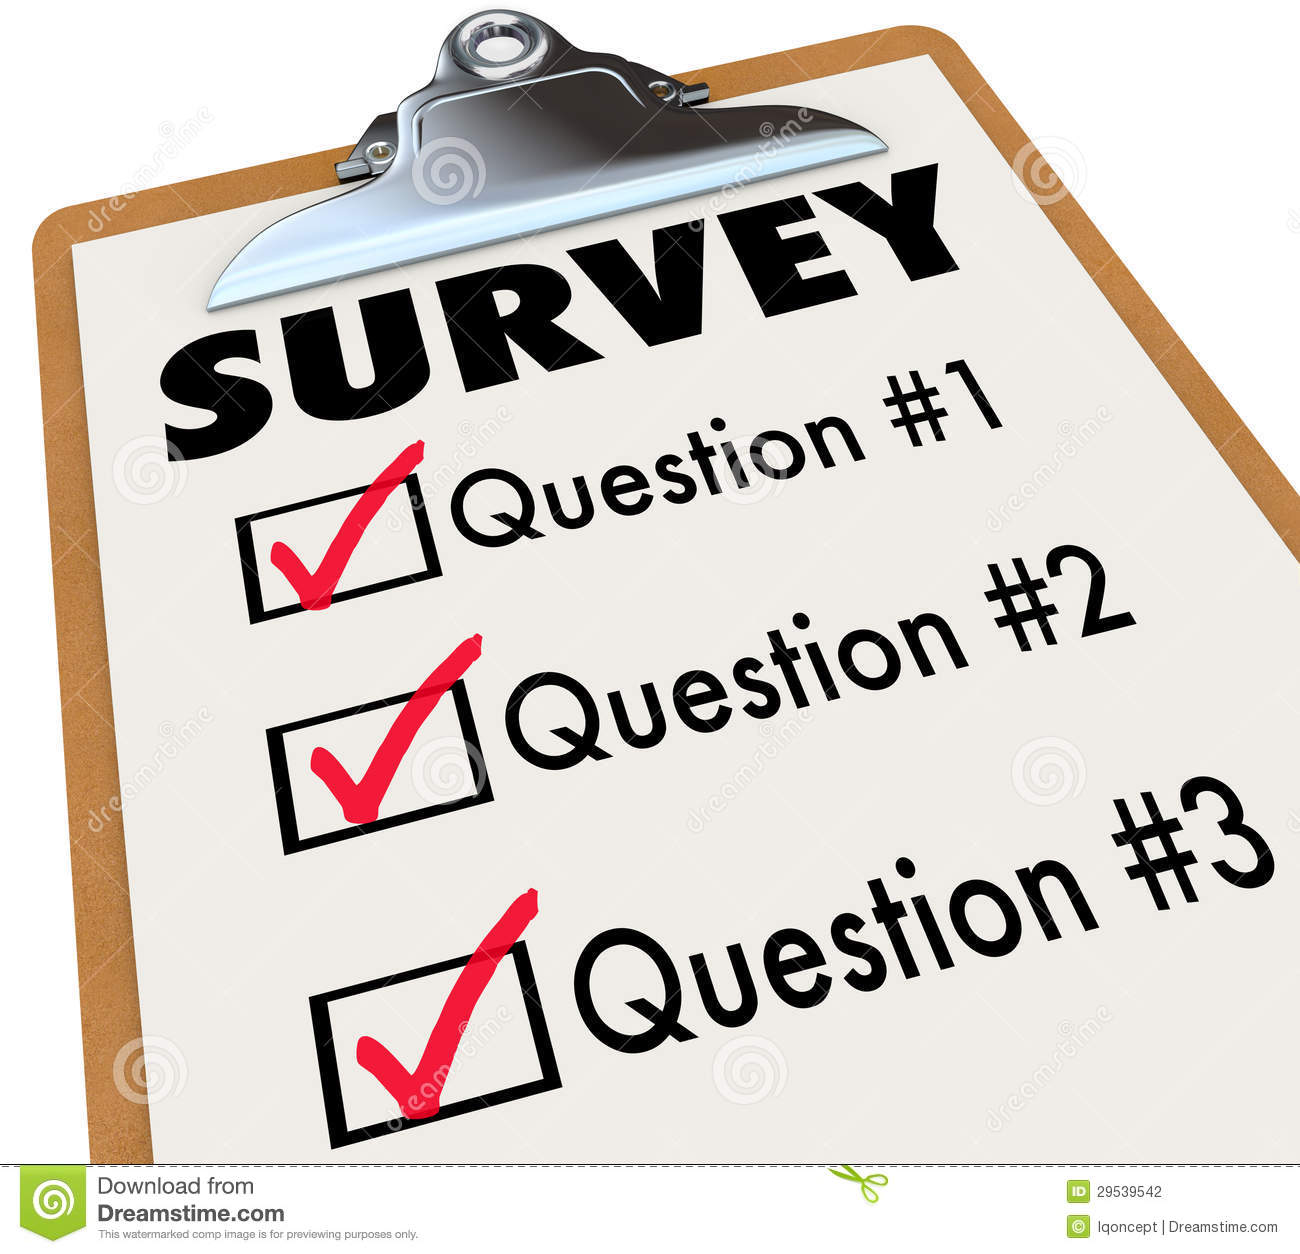 Student survey clipart.